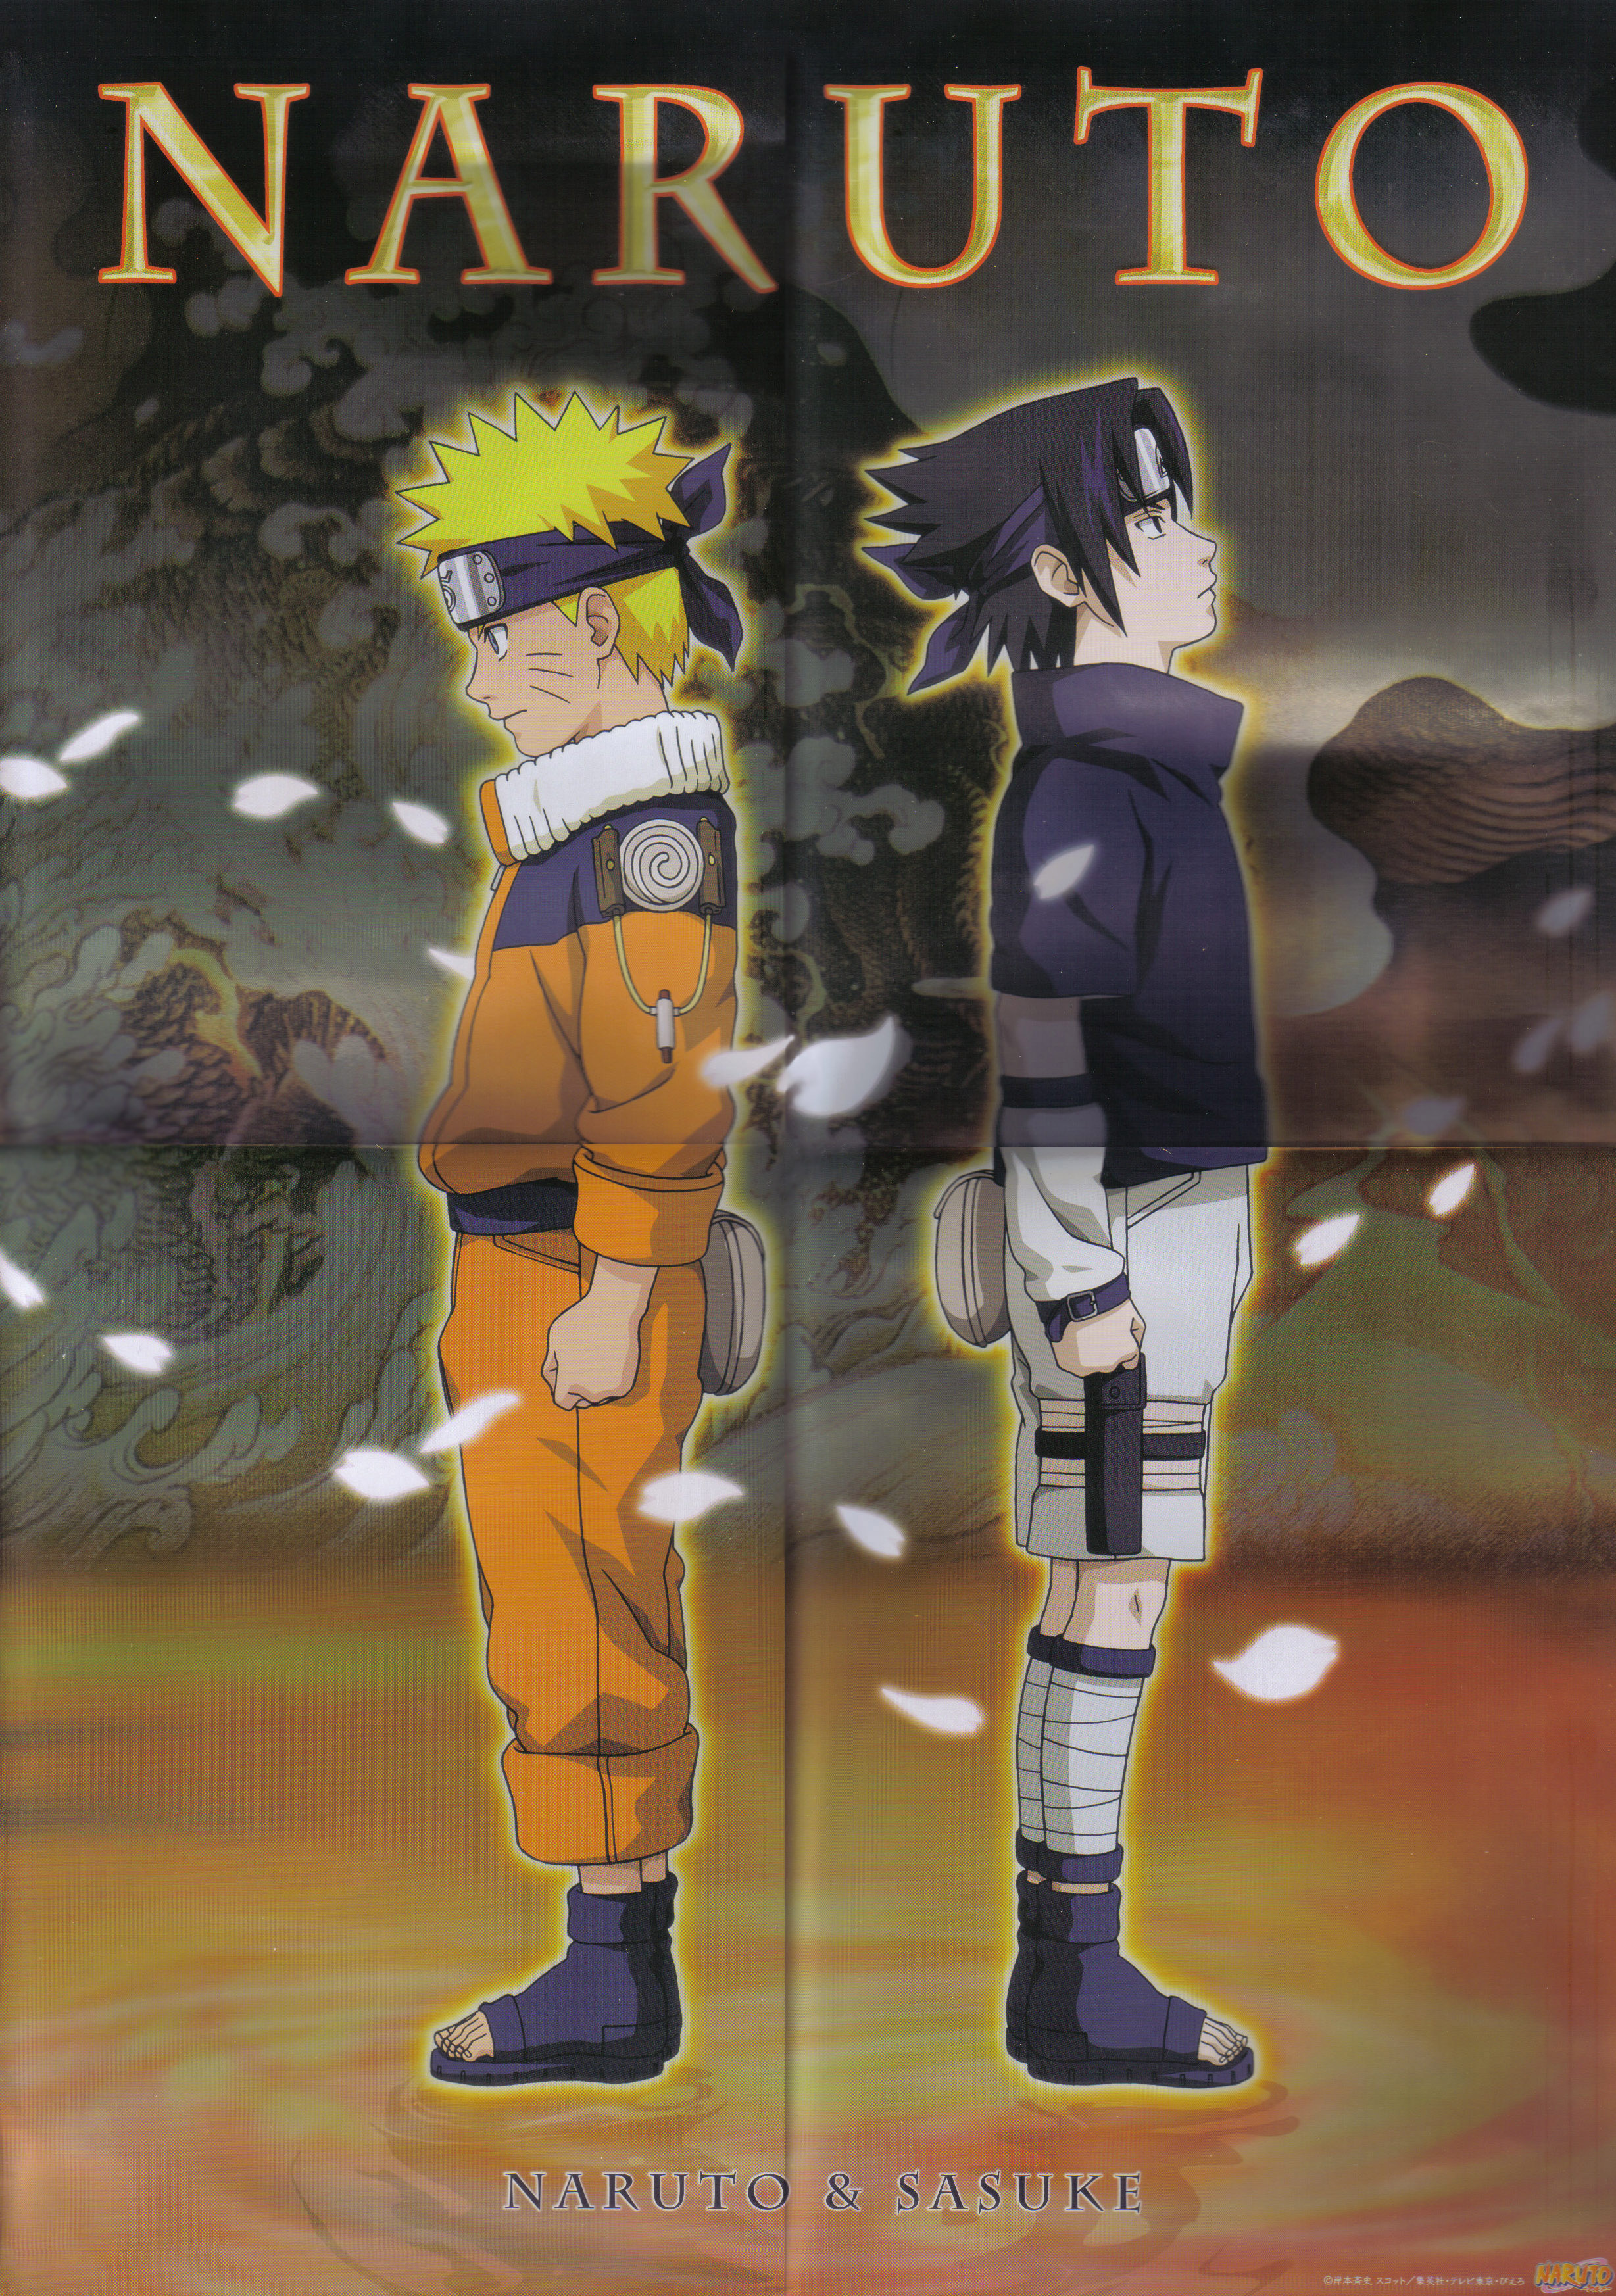 Naruto and Sasuke with Their Back to the Other.jpg